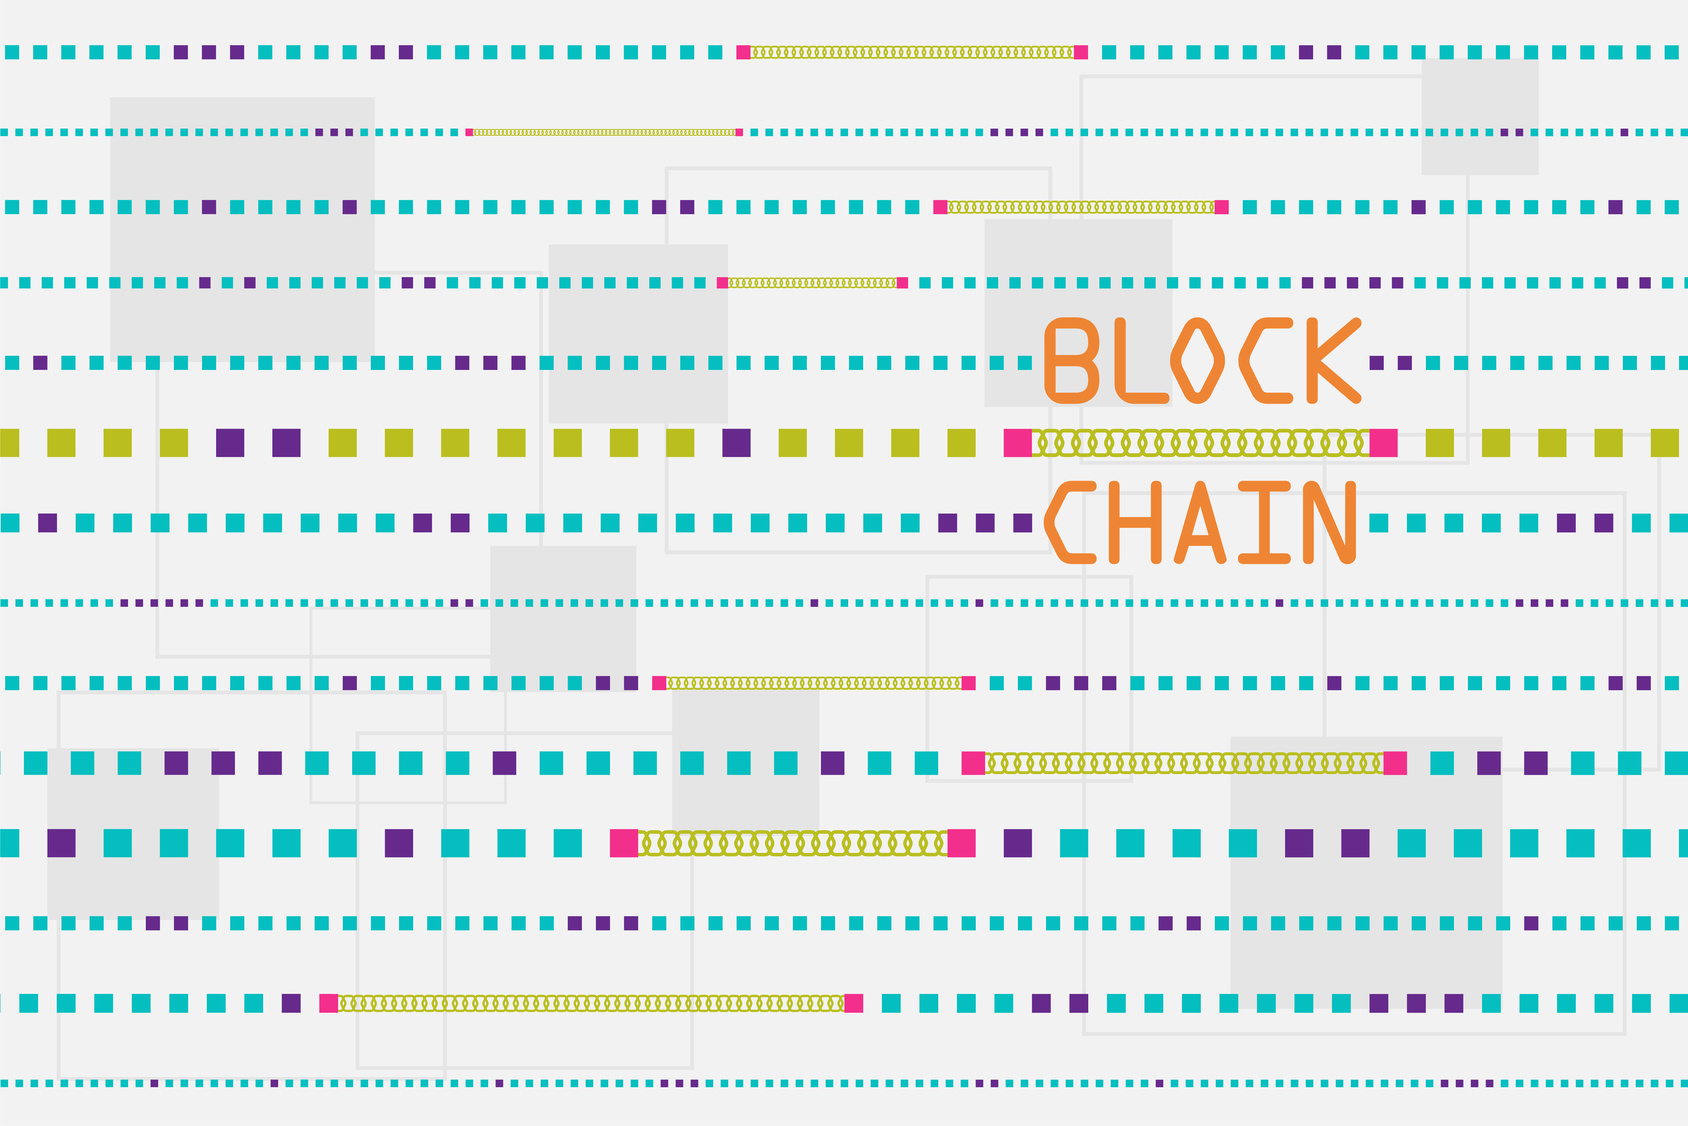 BlockcPlatform enables unlisted companies to digitalise their financial securitieshain